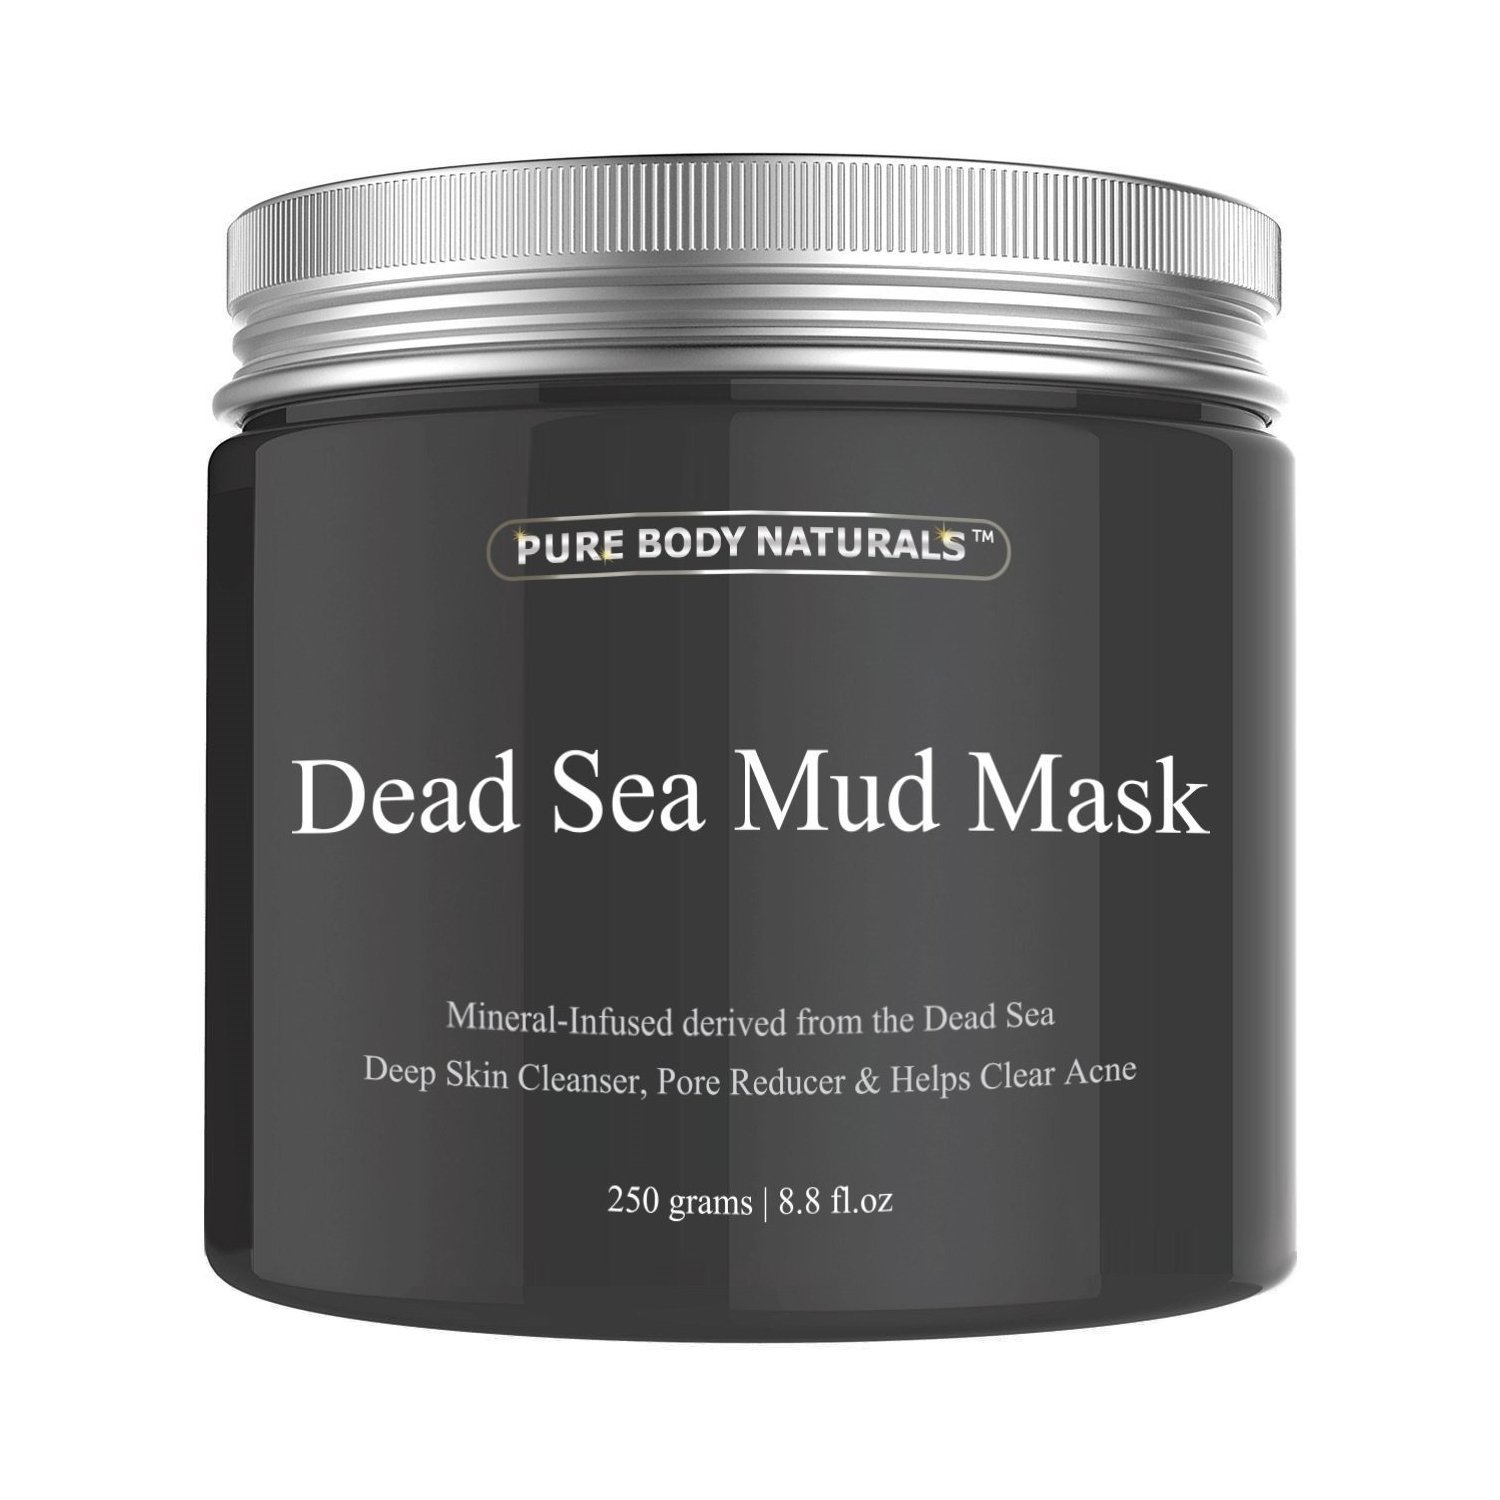 Dead Sea Mud Mask for for Facial Treatment, Minimizes Pores, Reduces Wrinkles, 250g/ 8.8 fl. oz Pure Body Naturals MudMask-646437061445